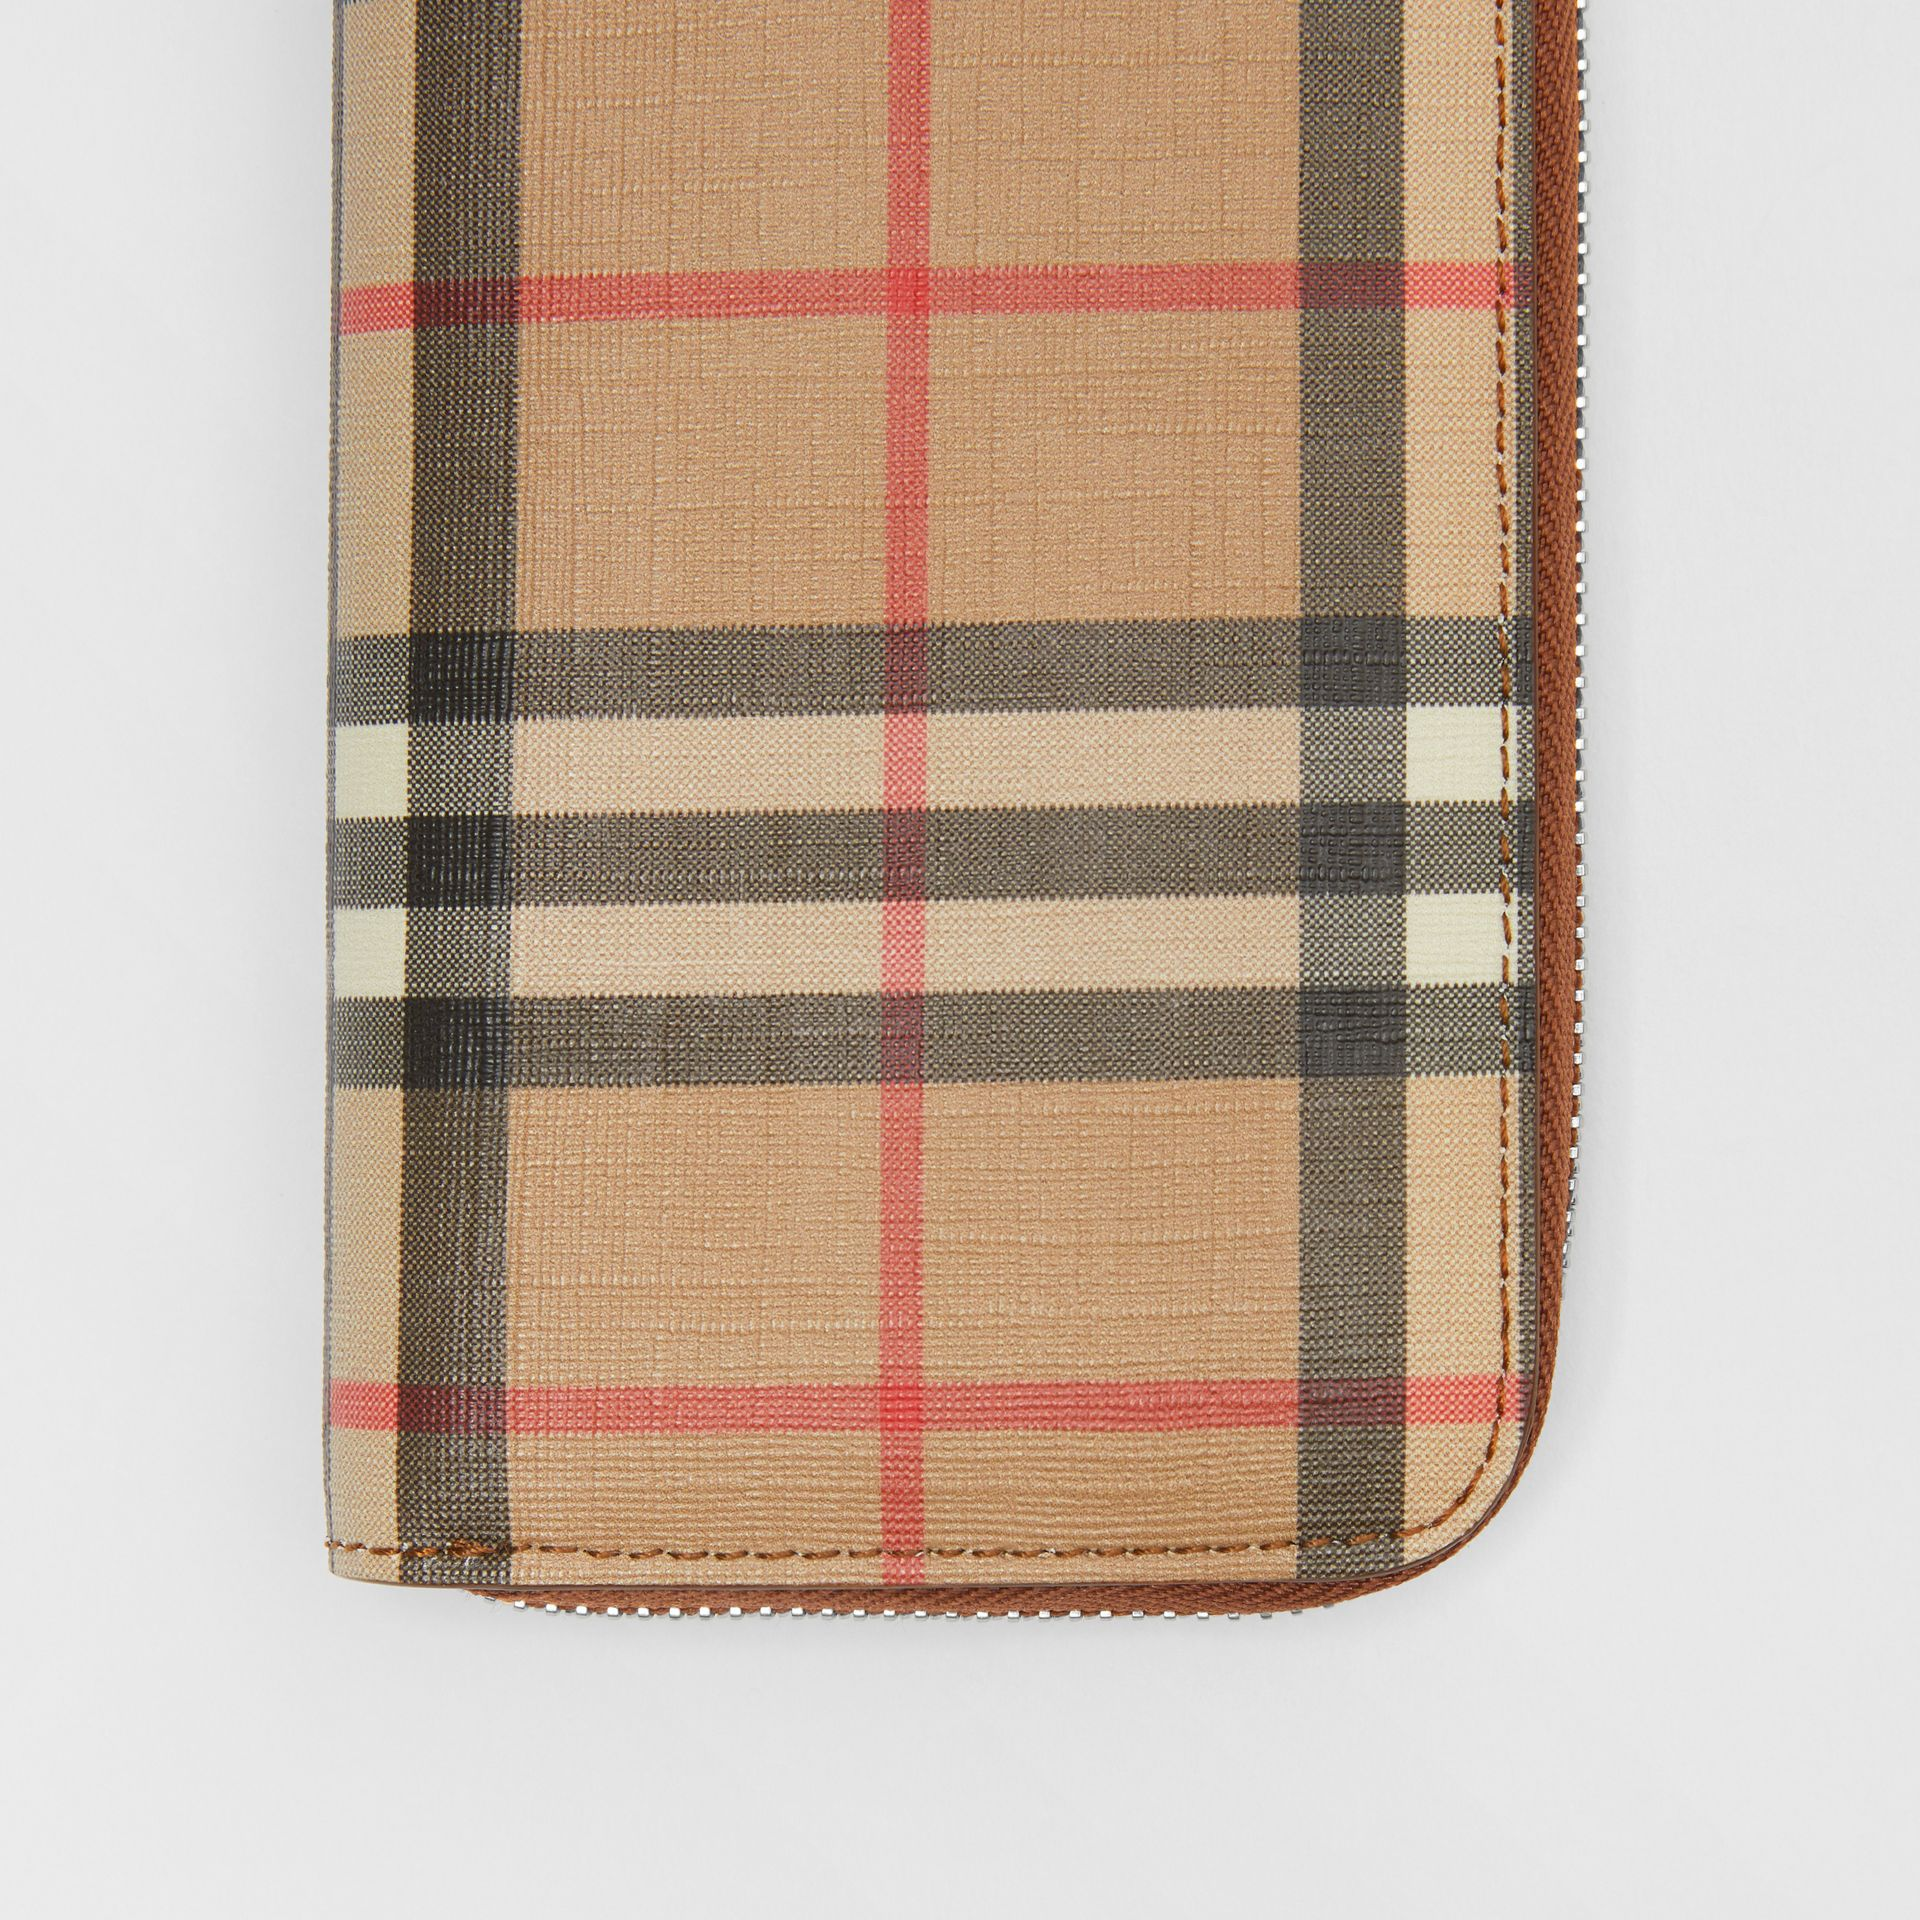 Vintage Check and Leather Ziparound Wallet in Malt Brown - Women | Burberry United Kingdom - gallery image 1